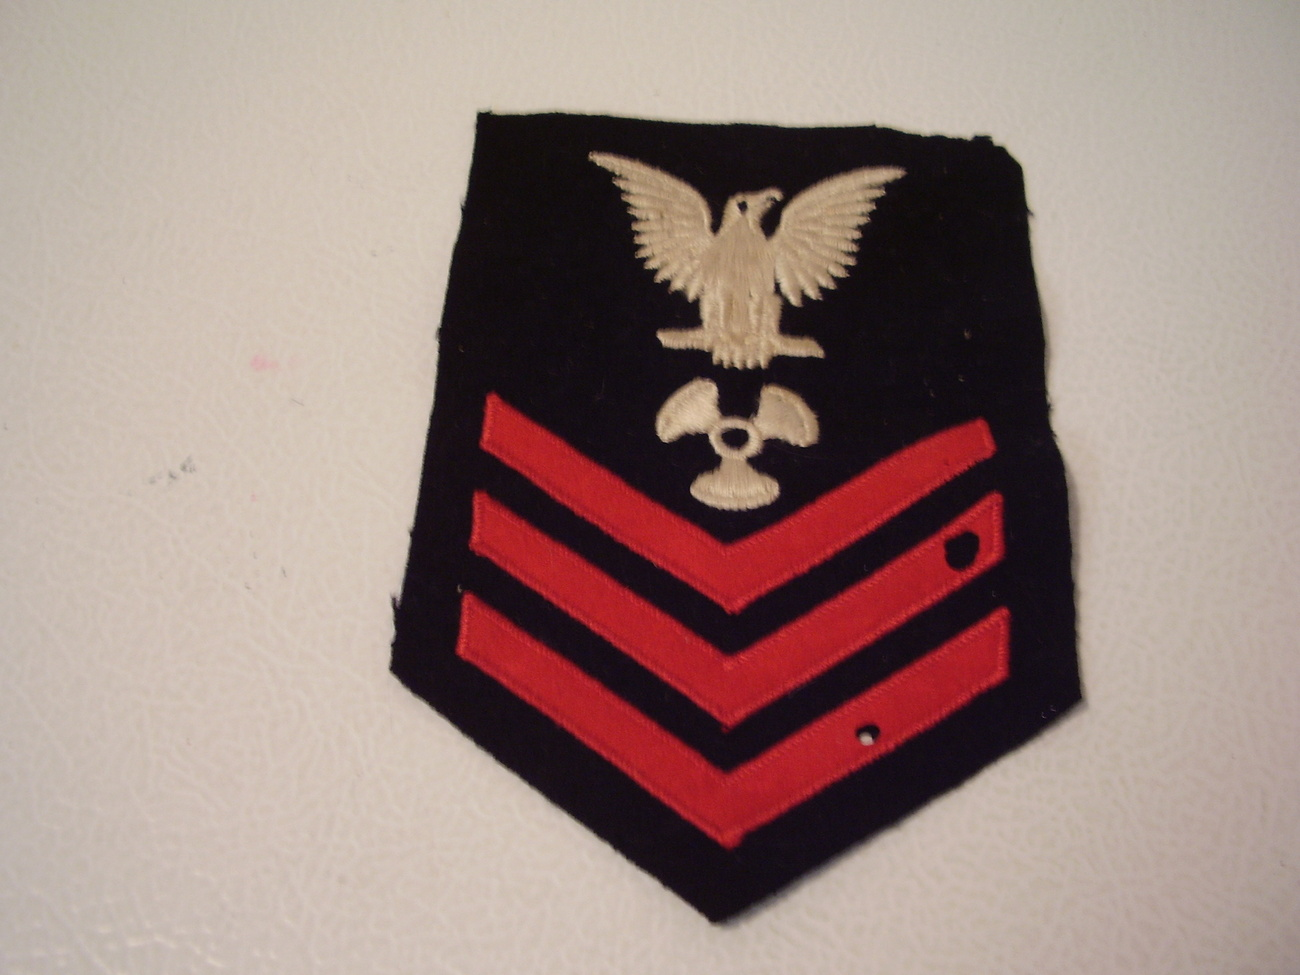 World War II Navy military badge - 1940